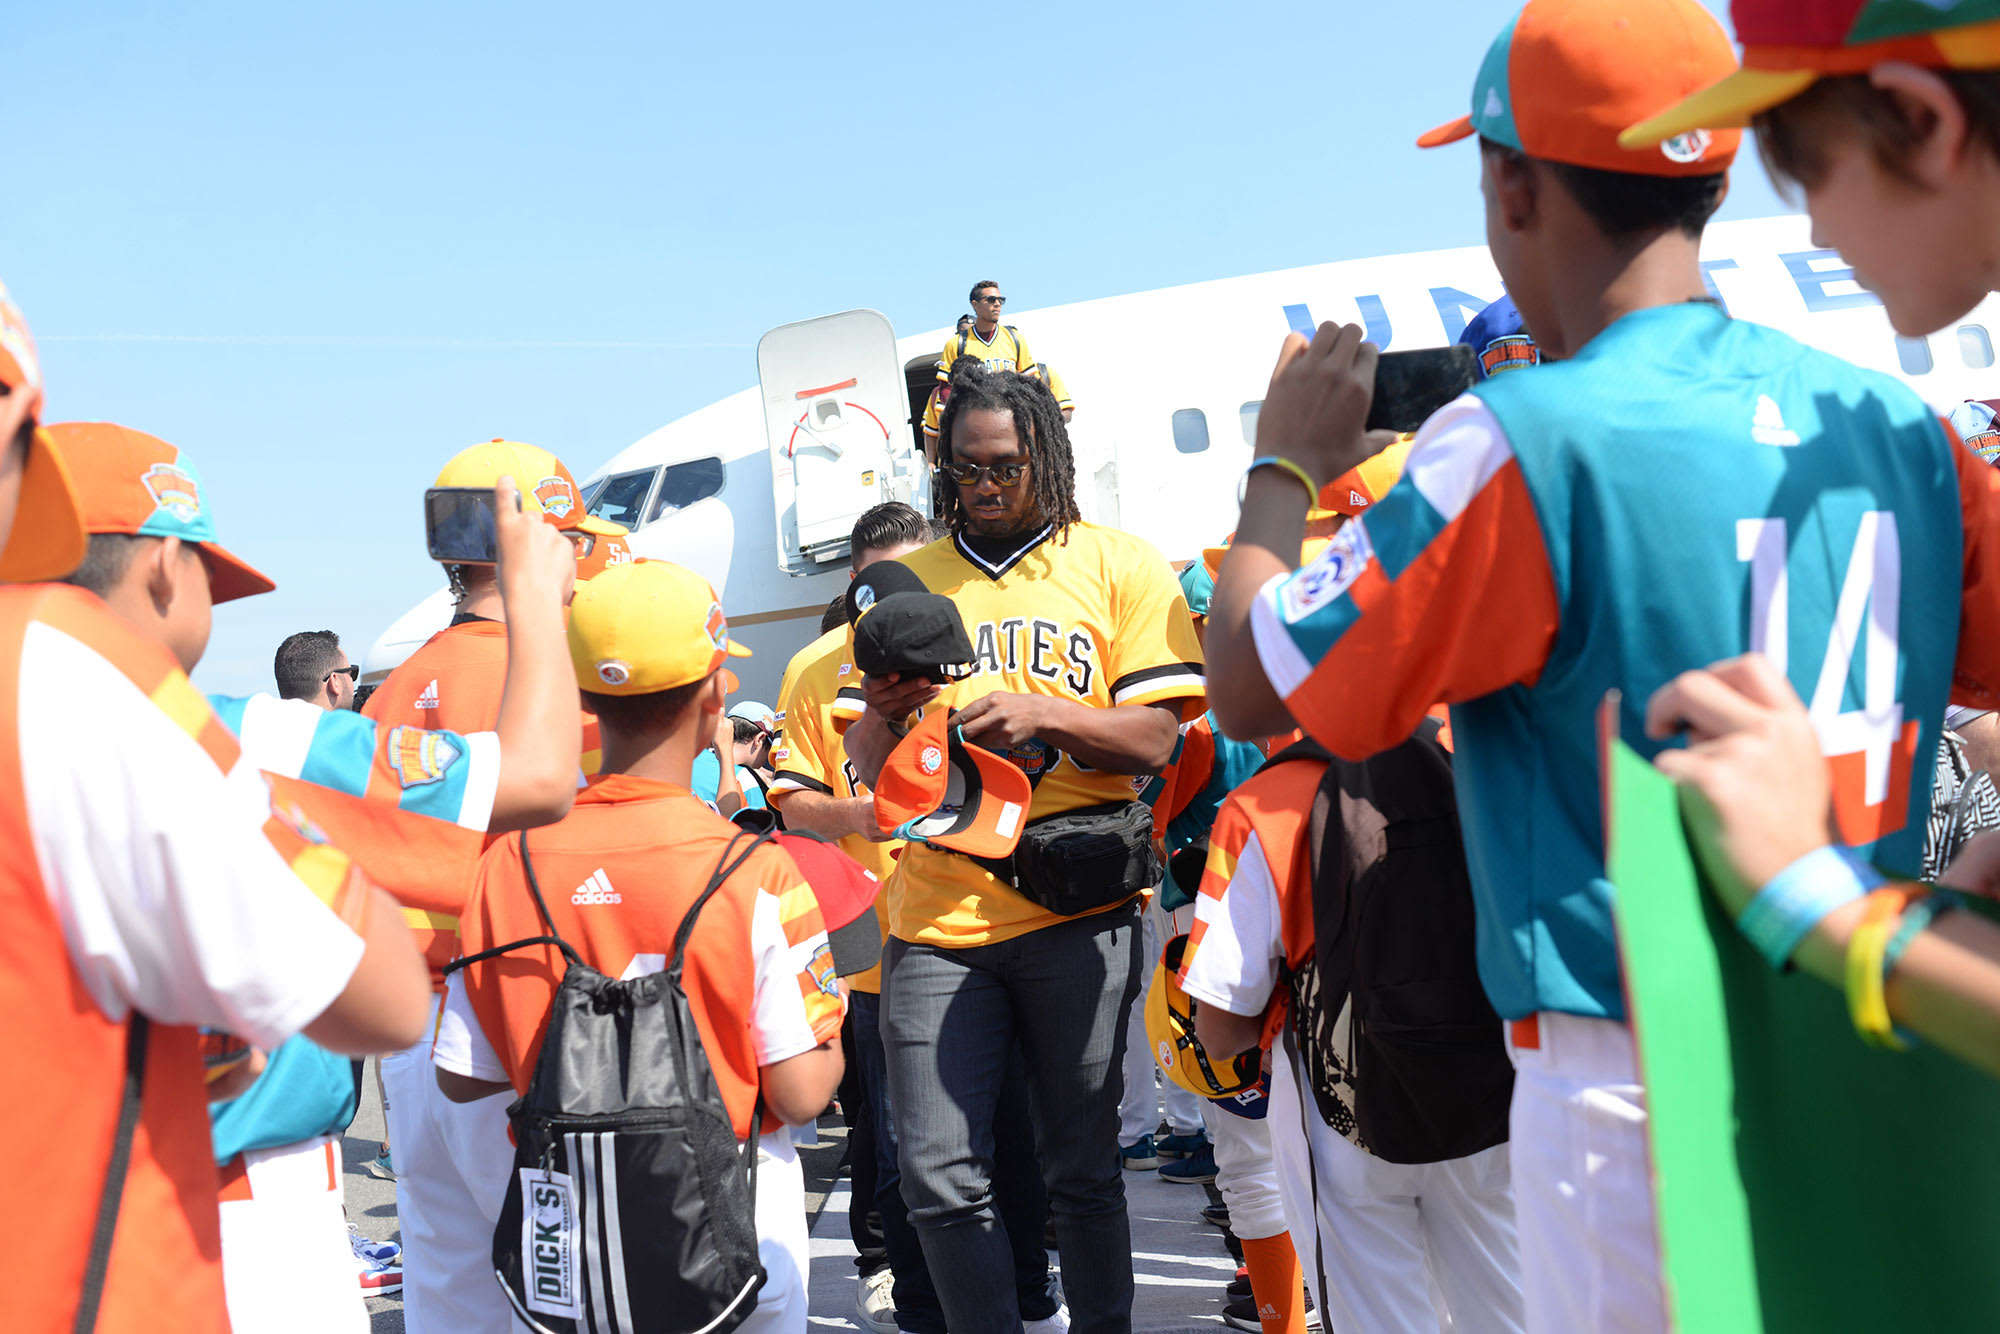 Pirates players walking off airplane